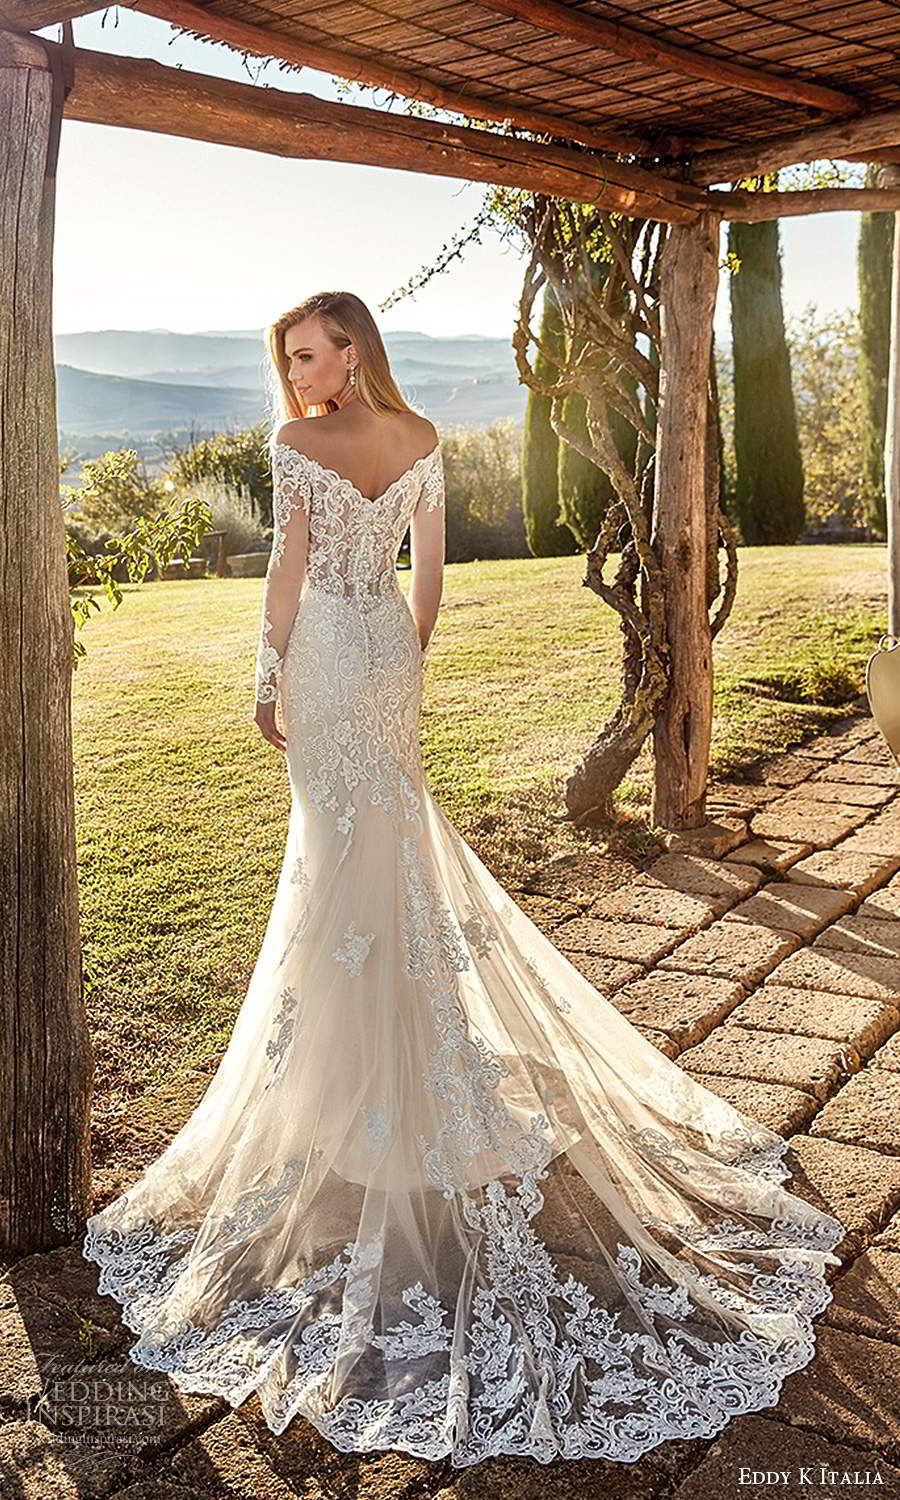 A-Line Wedding Dresses 2020/2021 Collections   Bridal